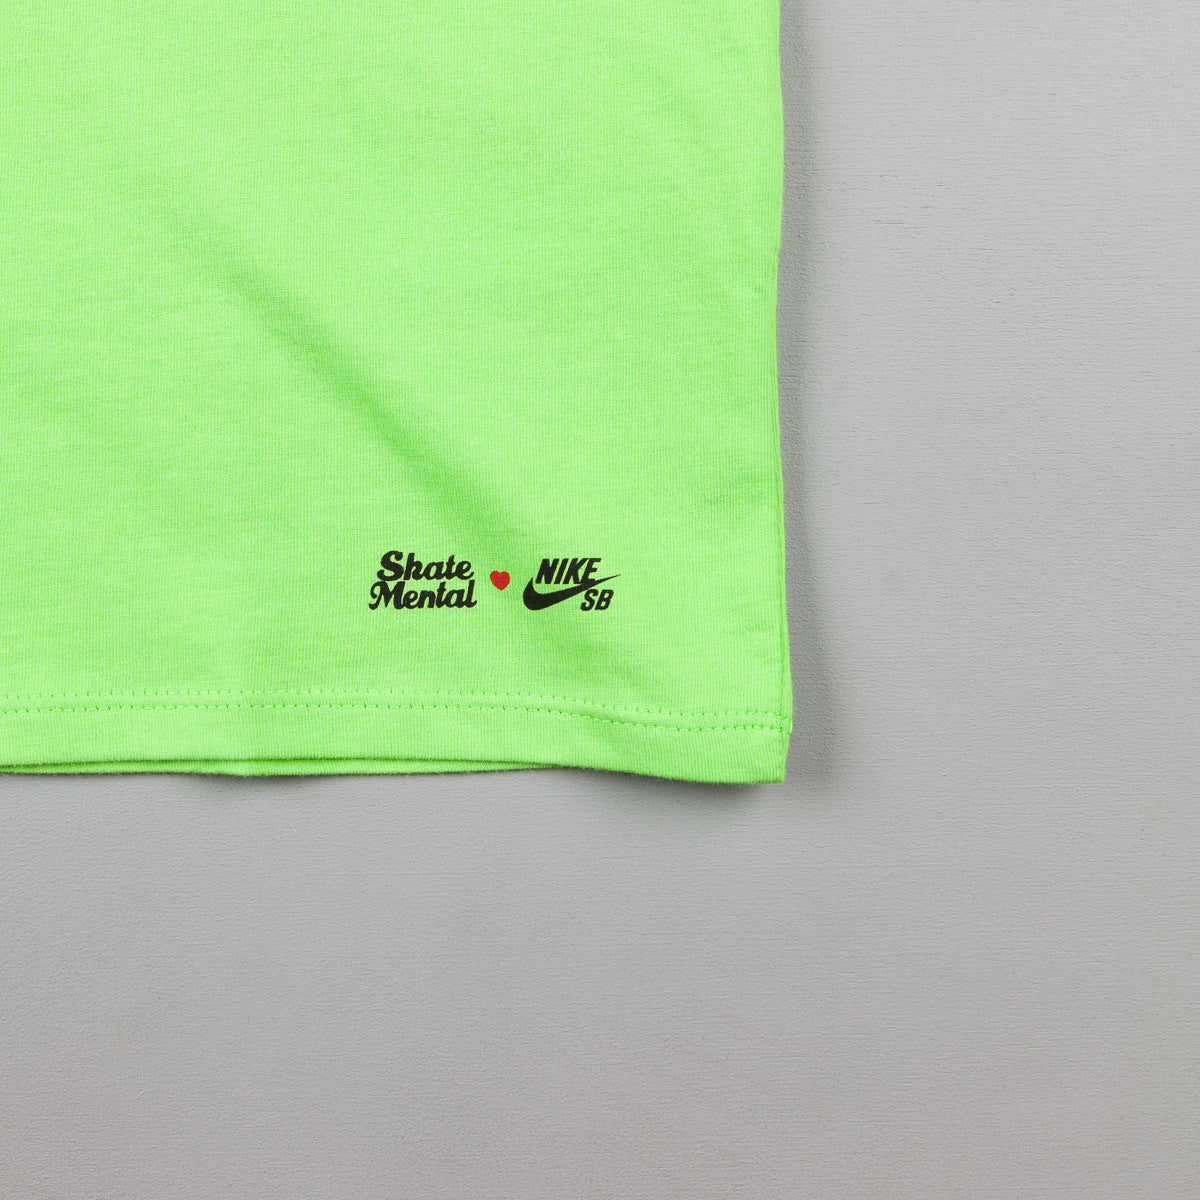 Nike SB x Skate Mental LA Long Sleeve T-Shirt - Action Green